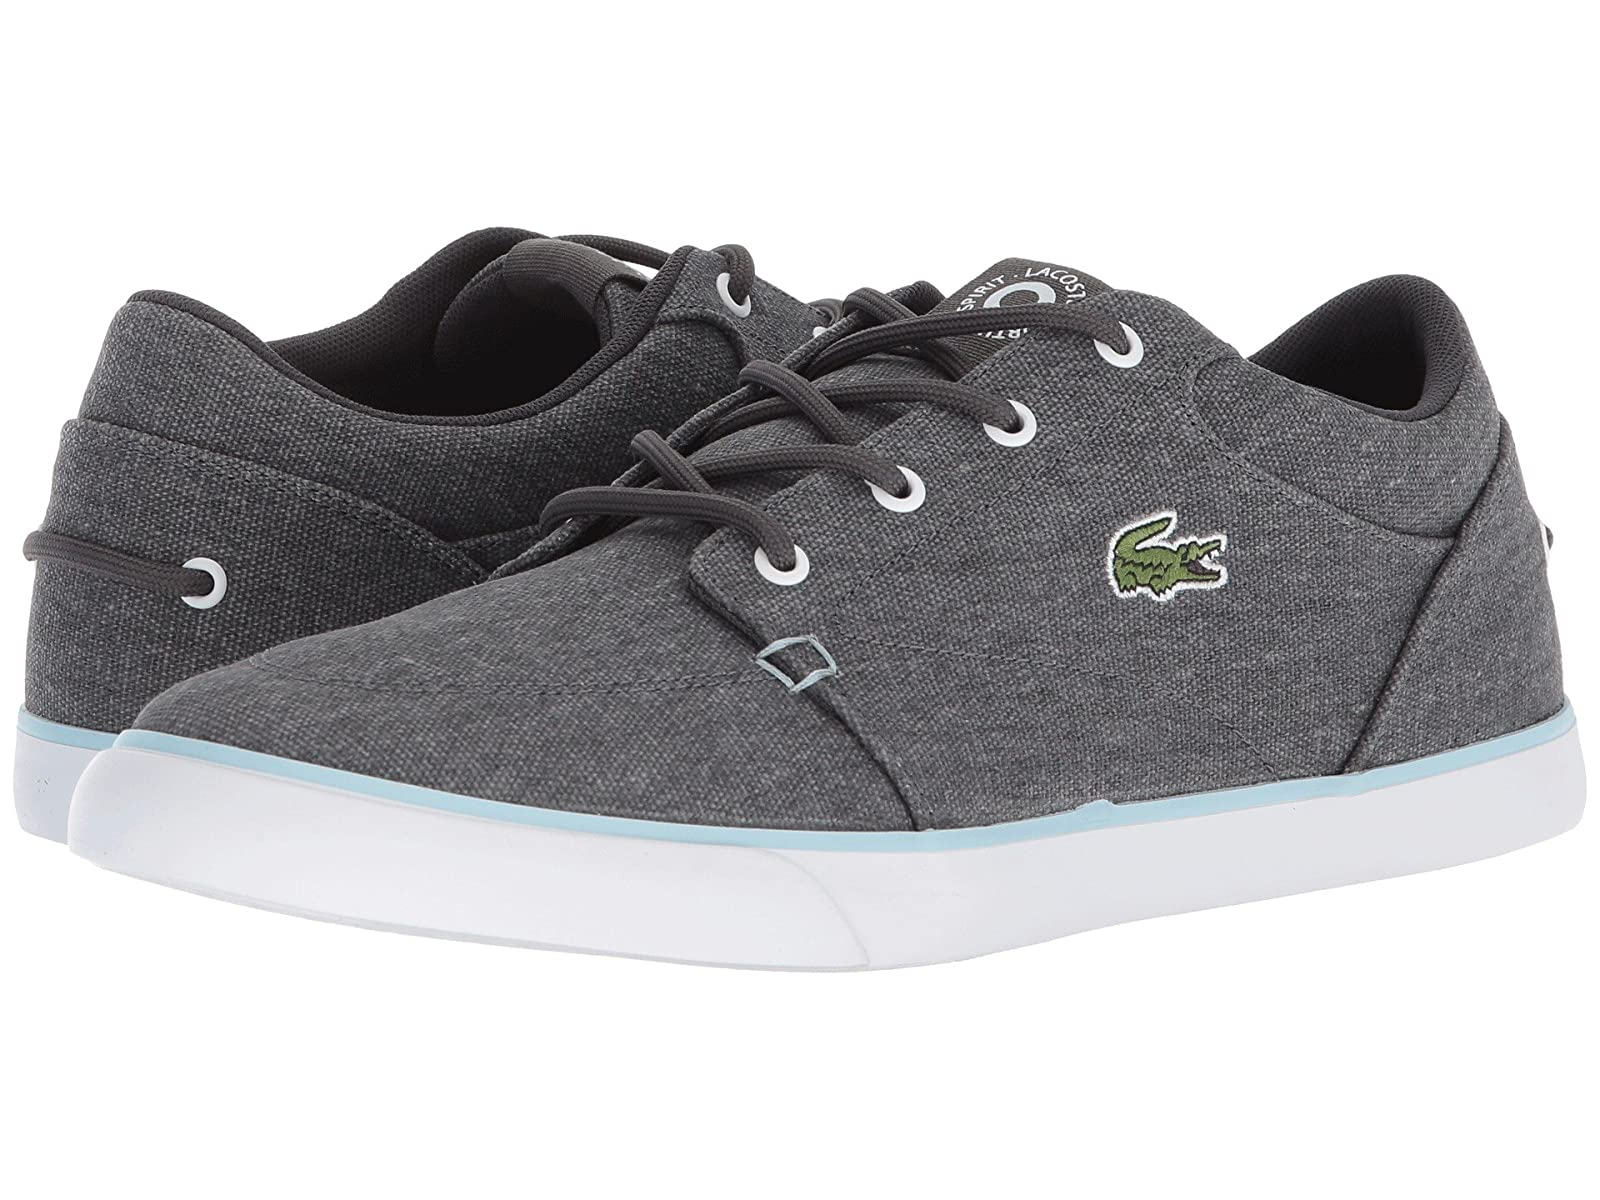 Lacoste Bayliss 118 3Atmospheric grades have affordable shoes